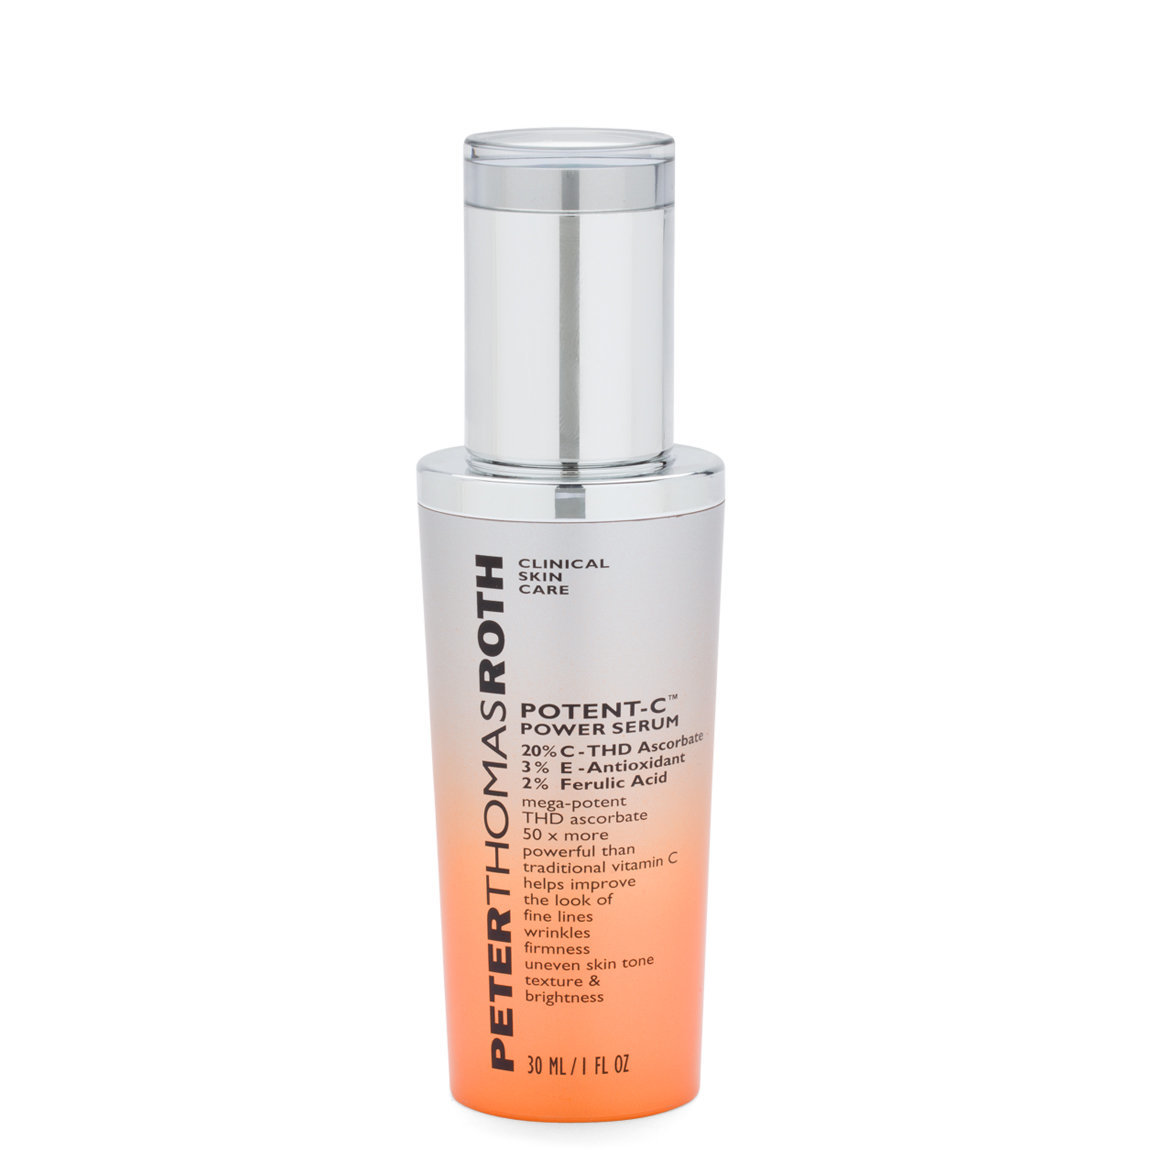 Peter Thomas Roth Potent-C Power Serum product swatch.